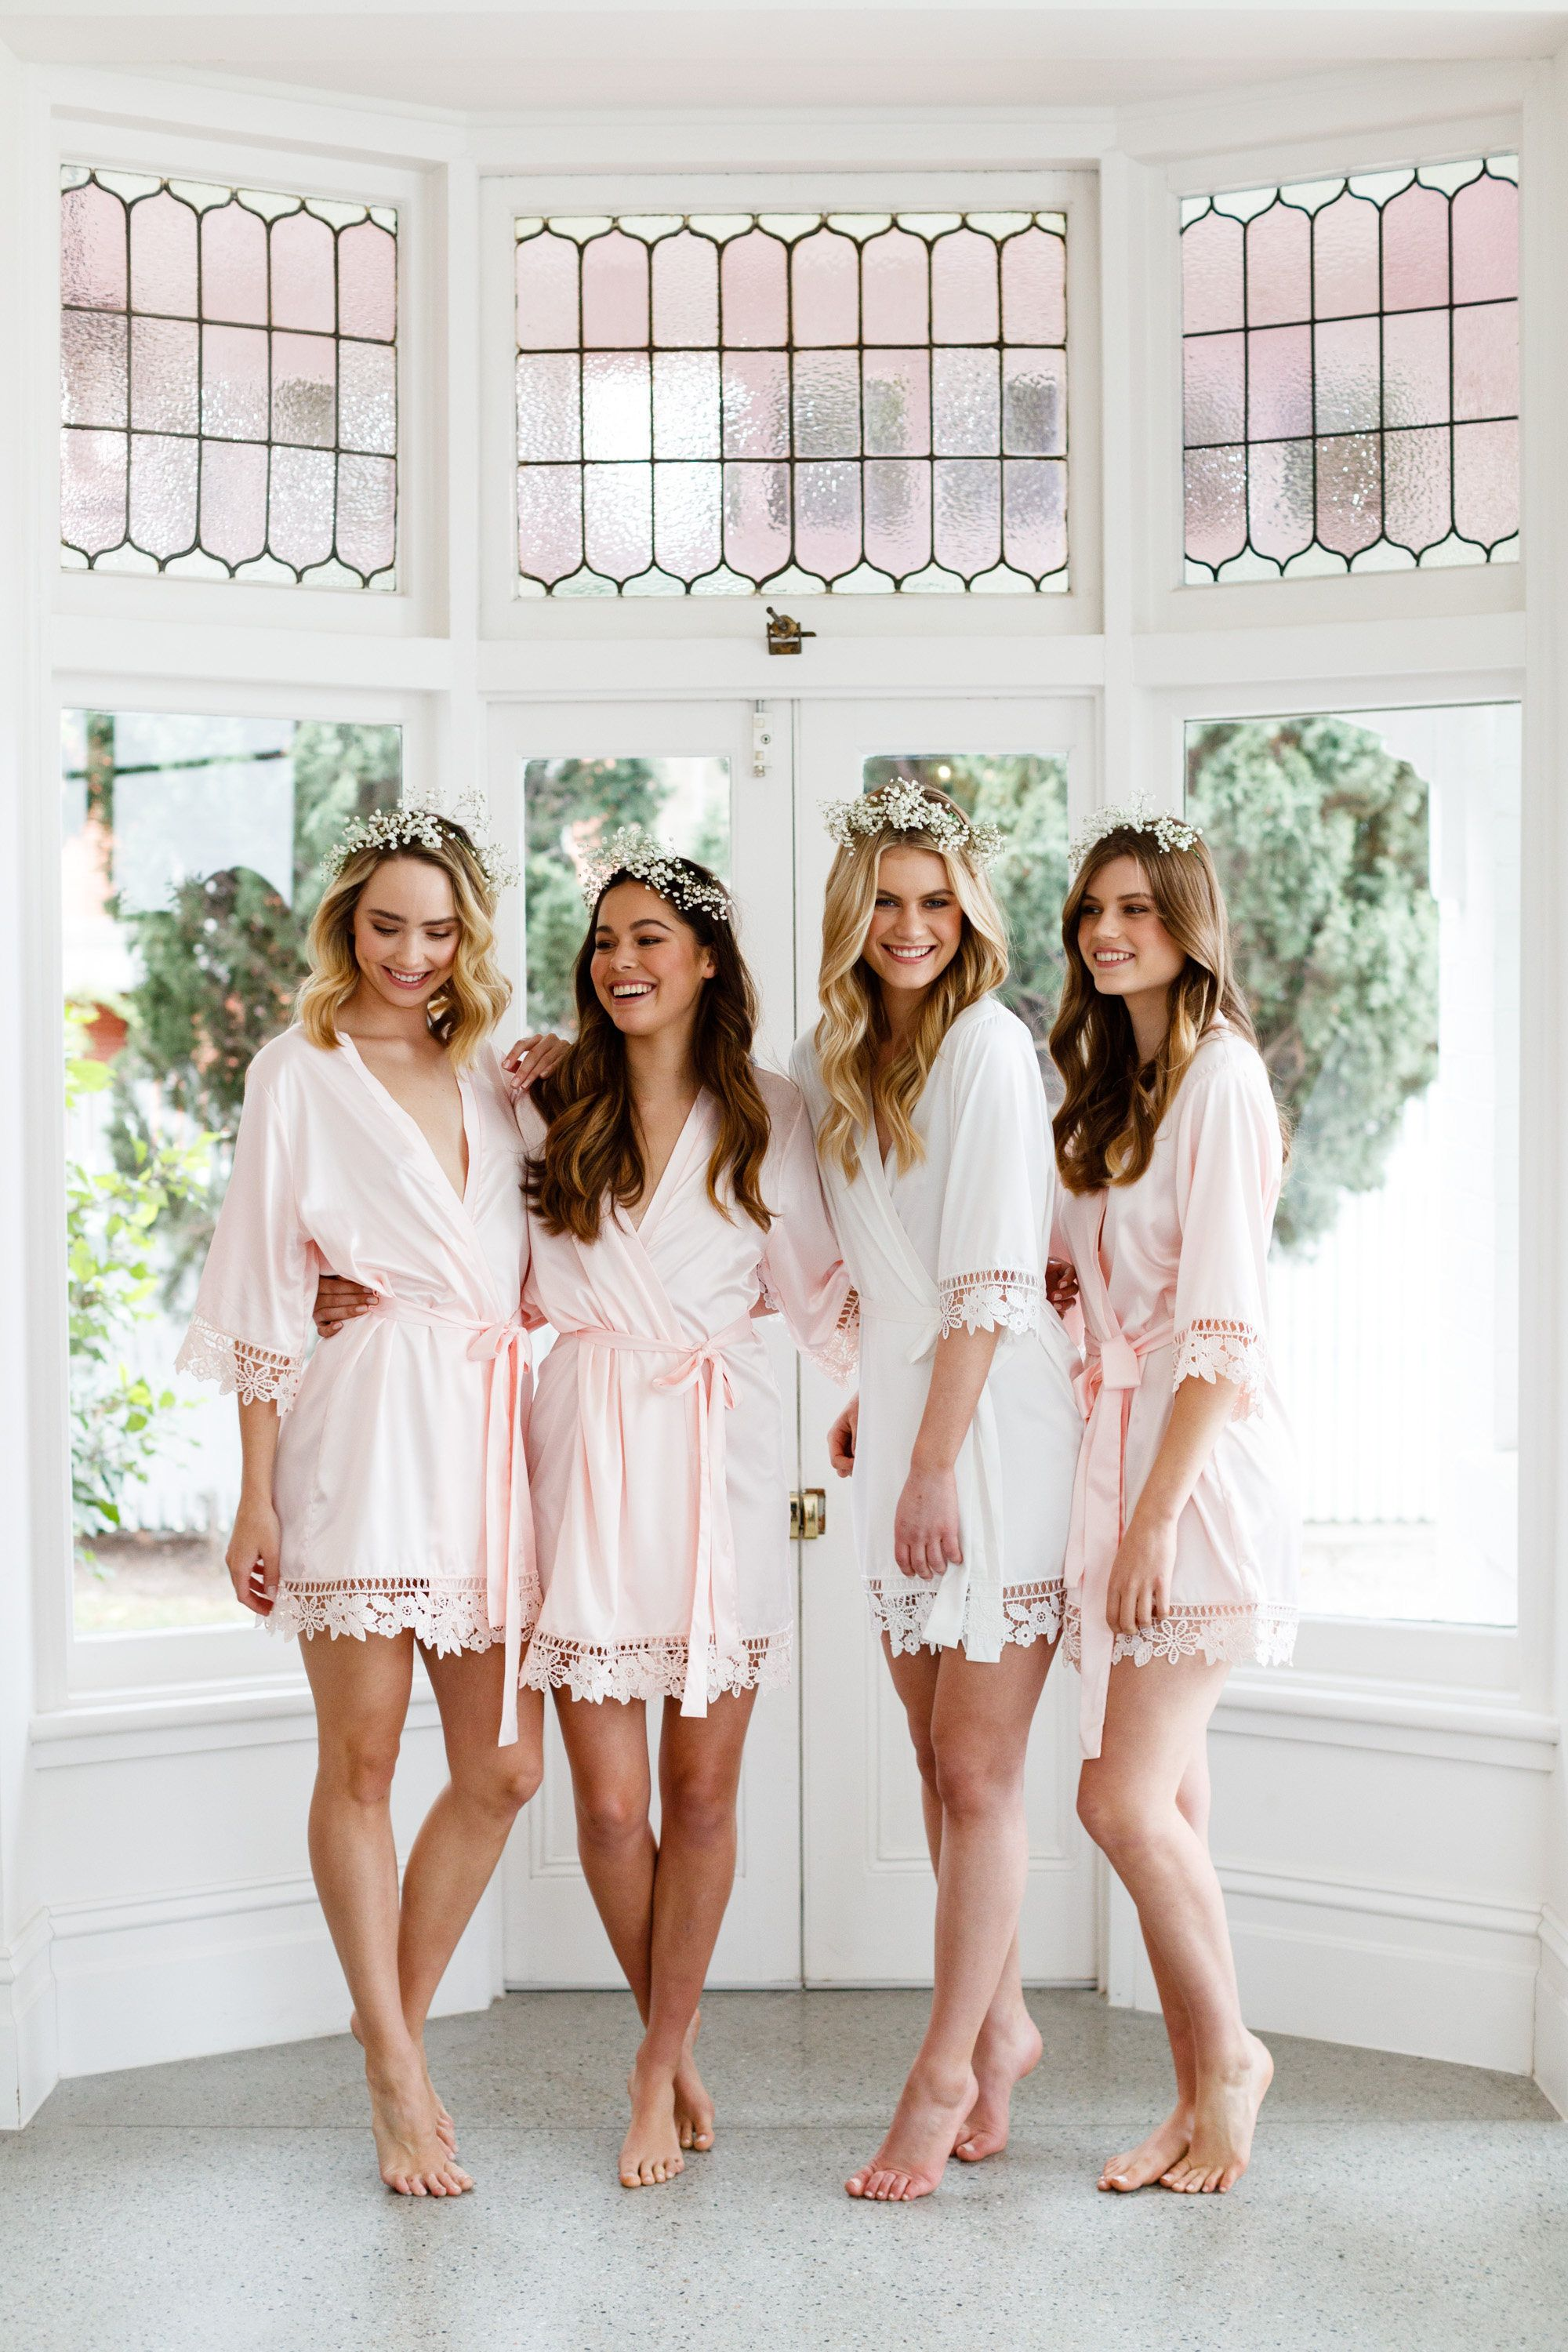 Le rose wedding robes